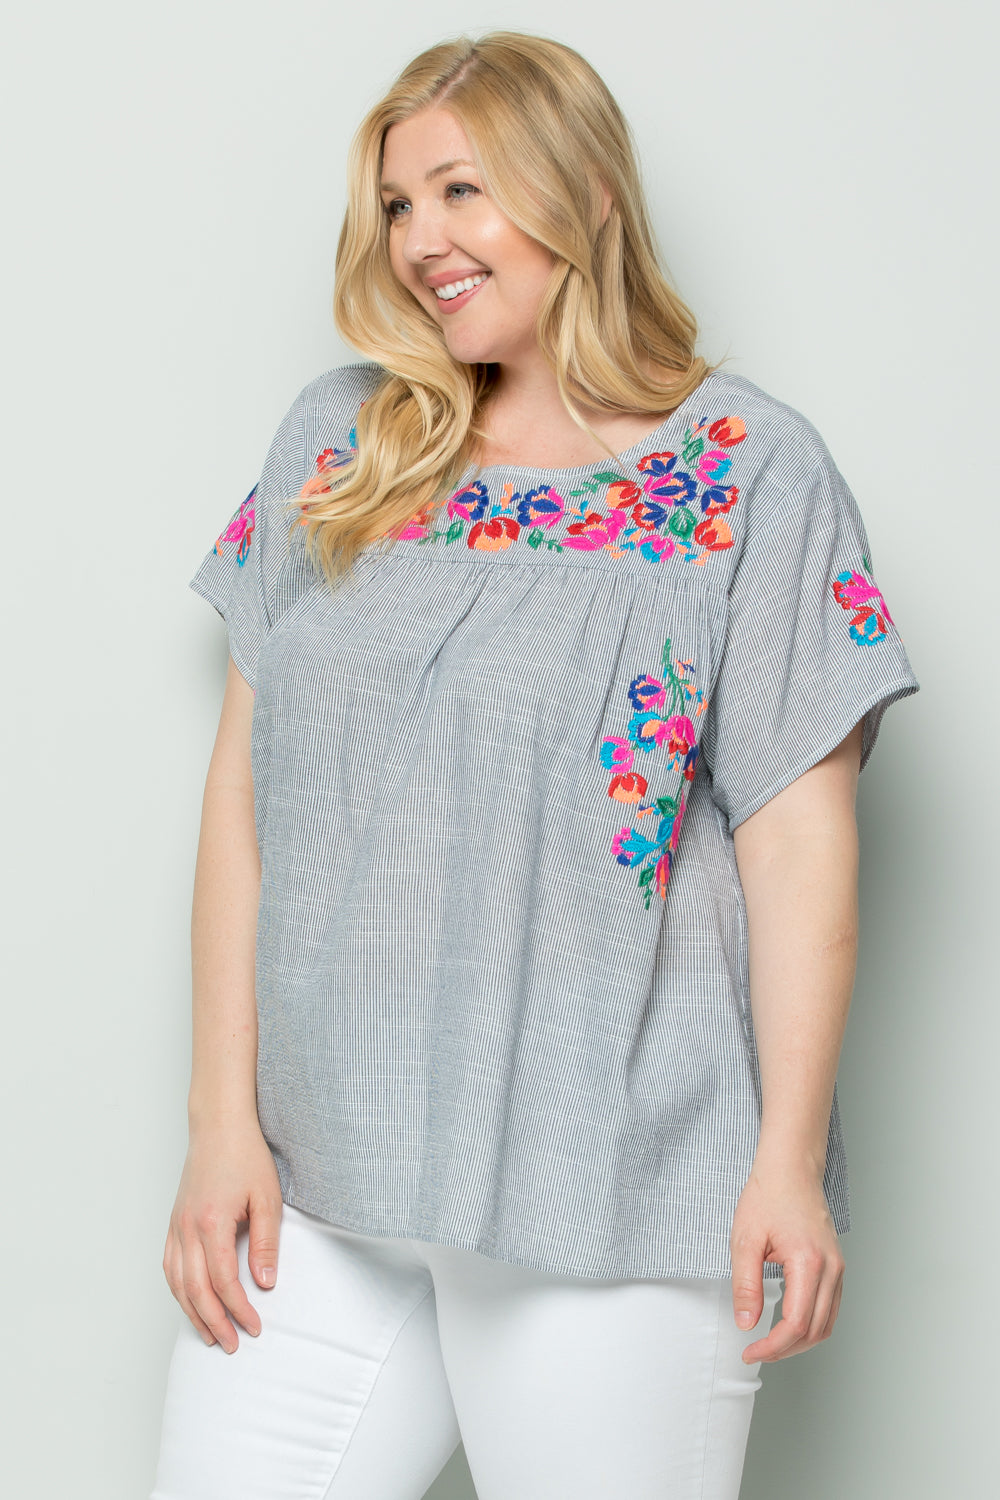 WT2377 Floral Embroidery Top - Blue